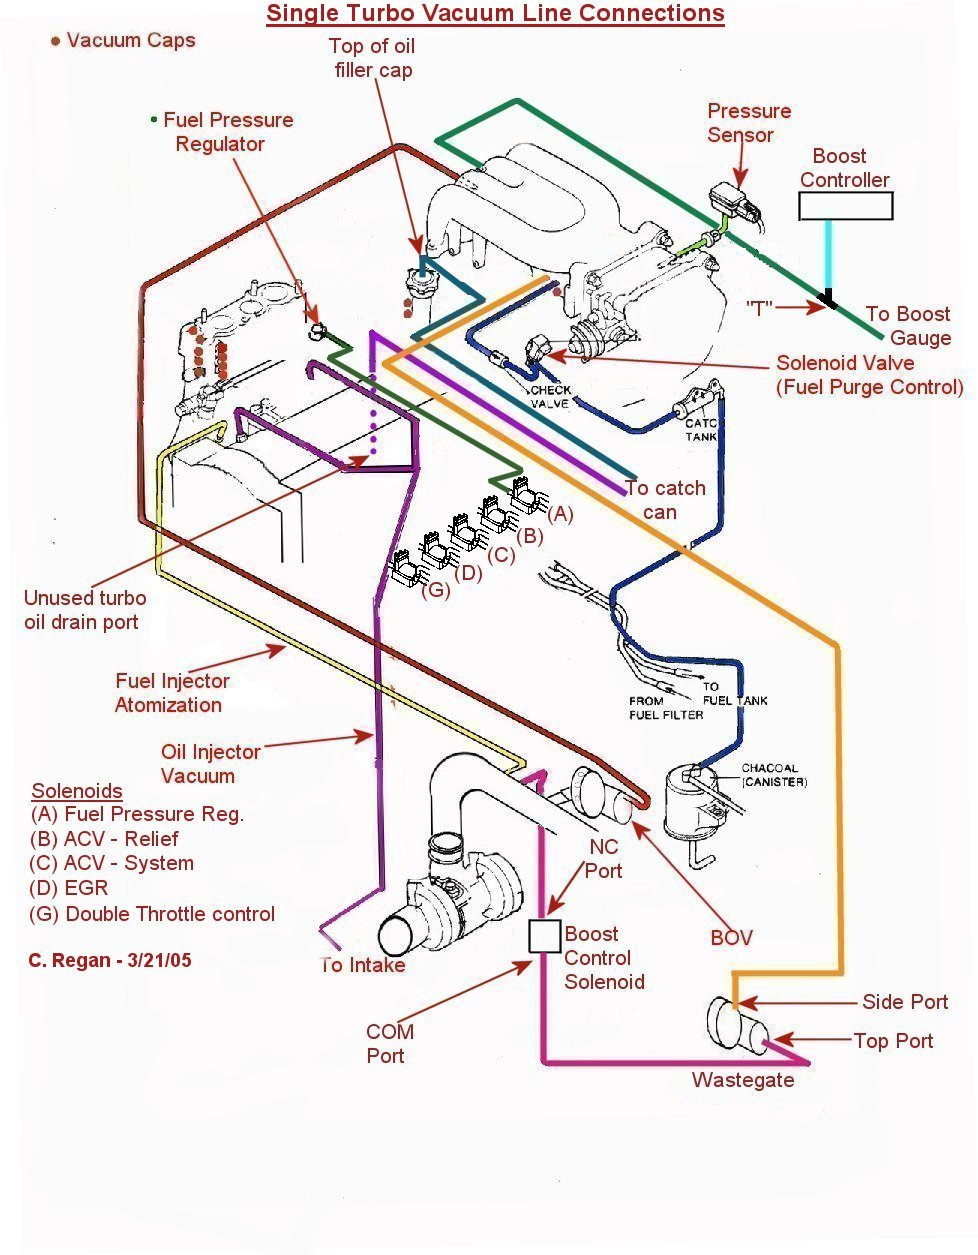 Rx8 Fuel Line Diagram Not Lossing Wiring Rx7 Pump Simple Post Rh 18 Asiagourmet Igb De Mazda Rx 8